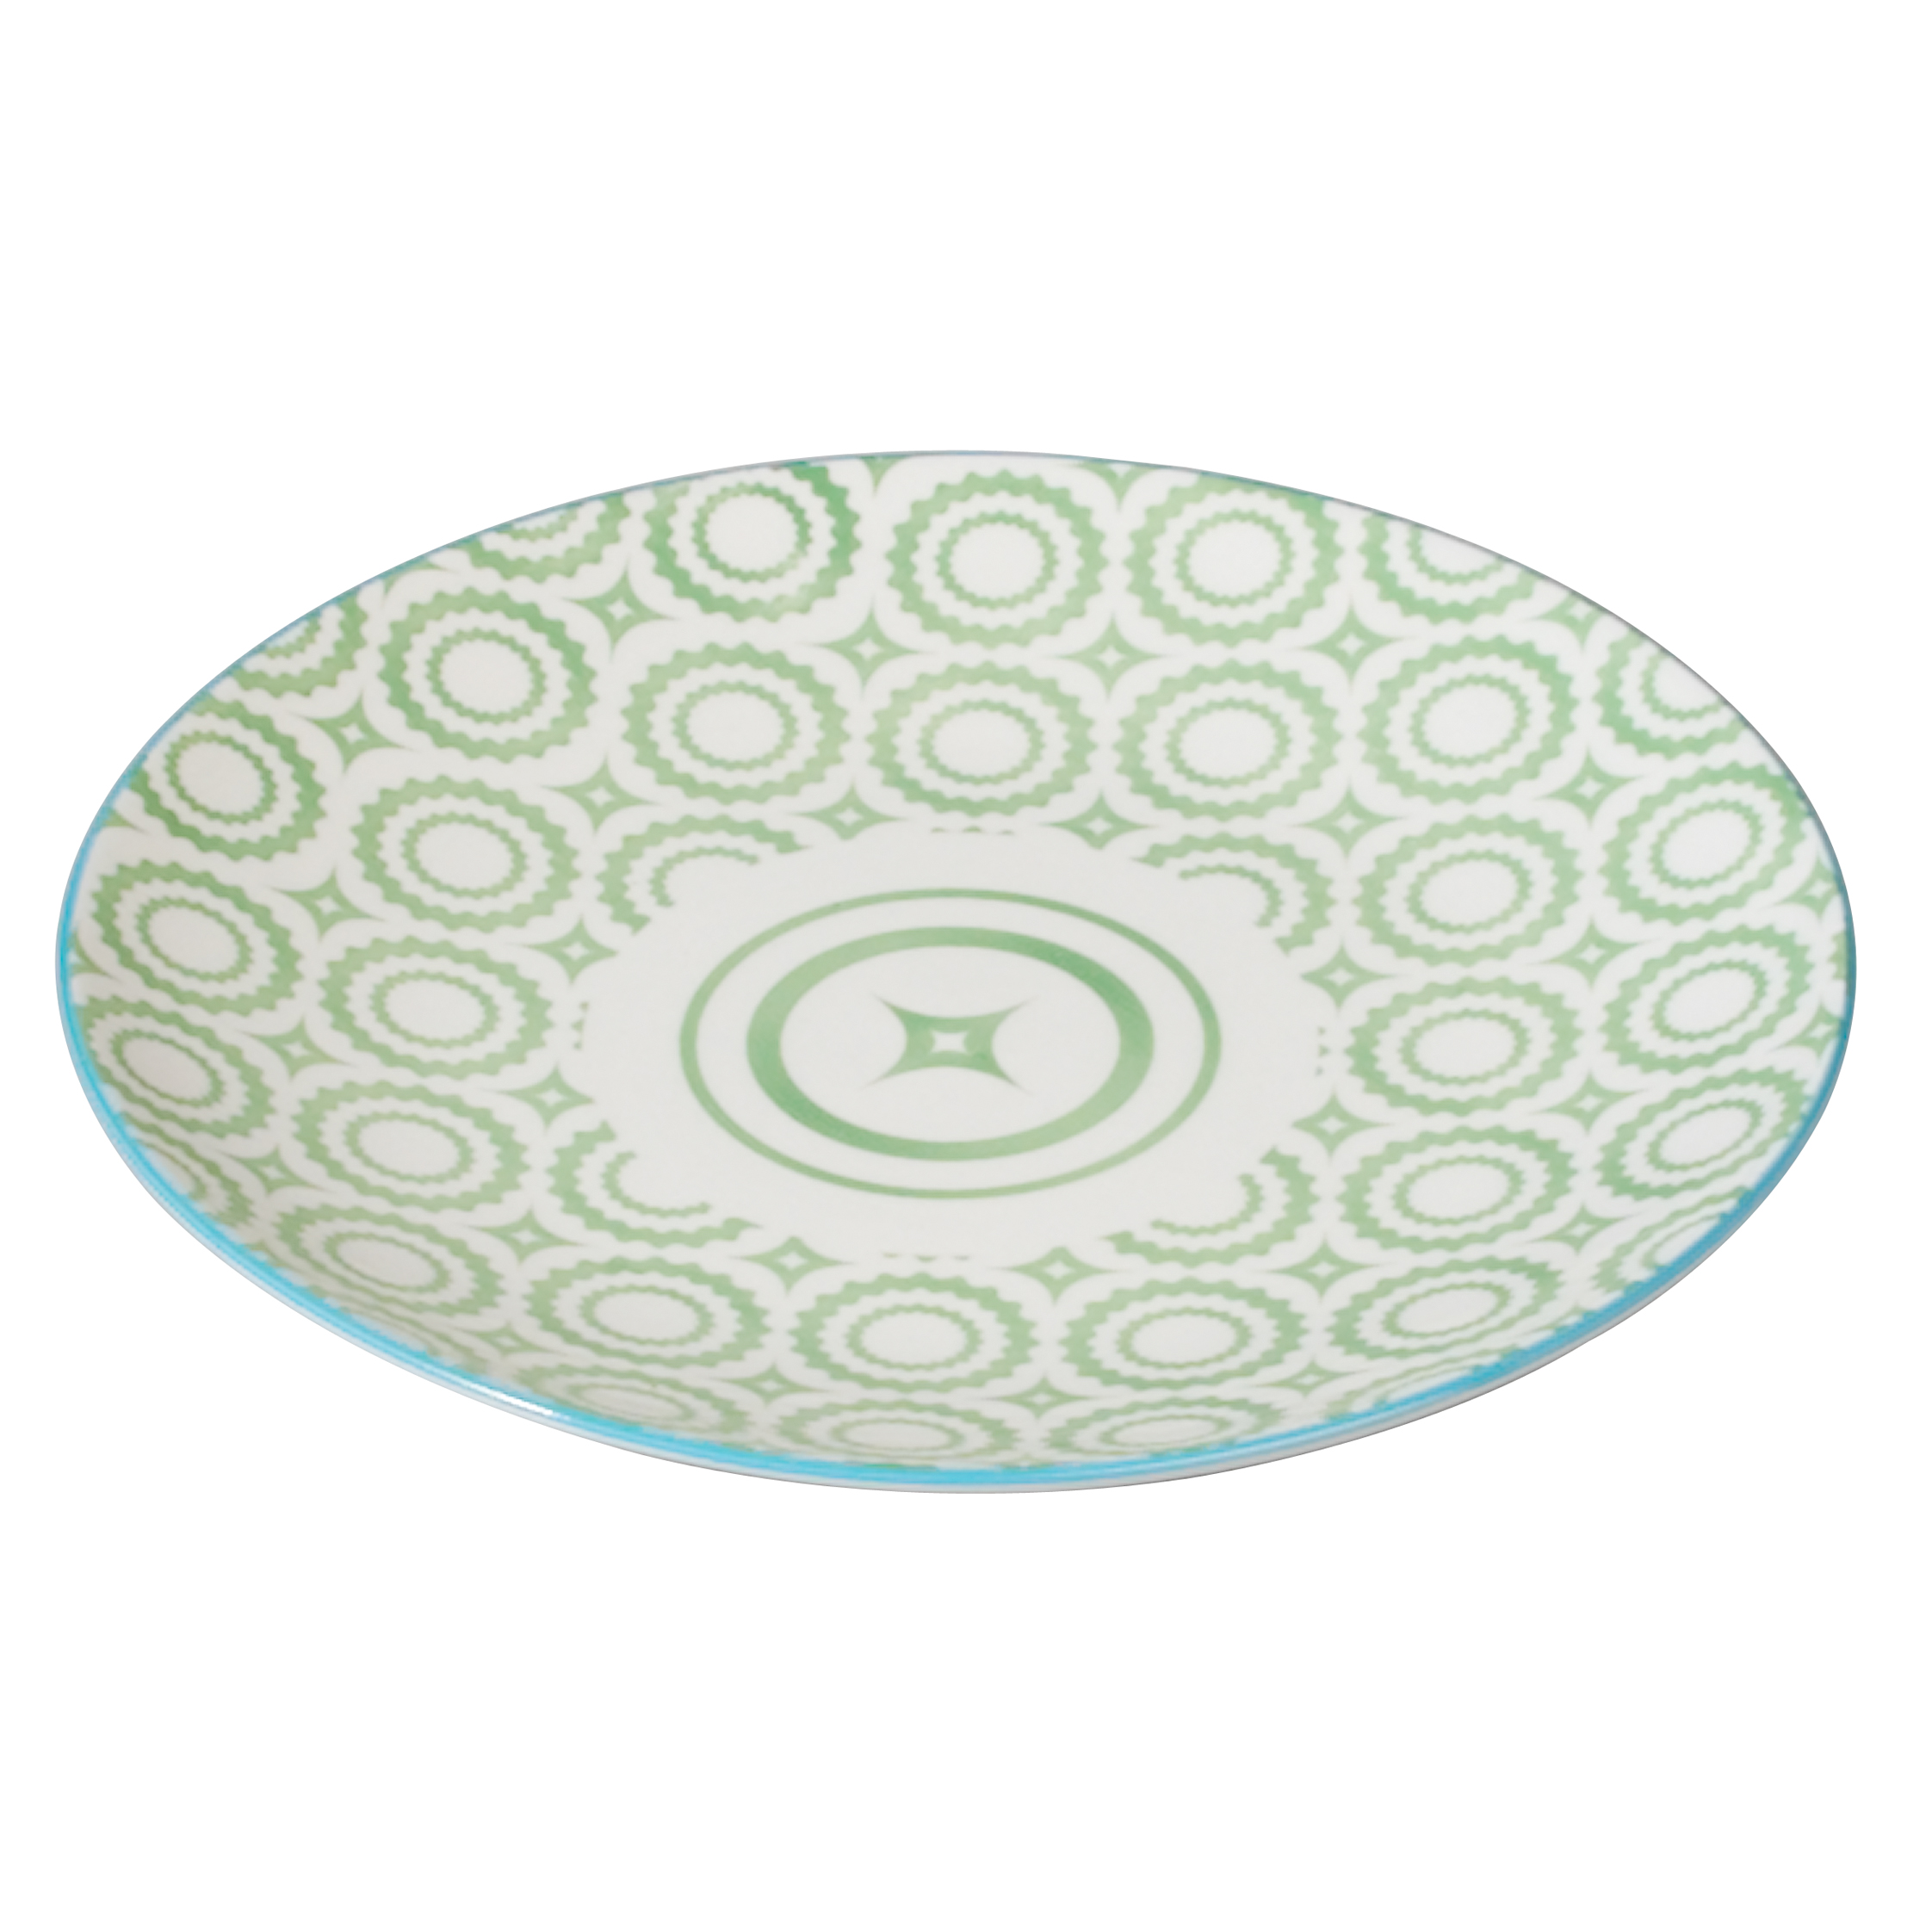 japanese side plate green circles  sc 1 st  Rex London & Plates and Bowls | Wholesale u0026 Trade | Rex London